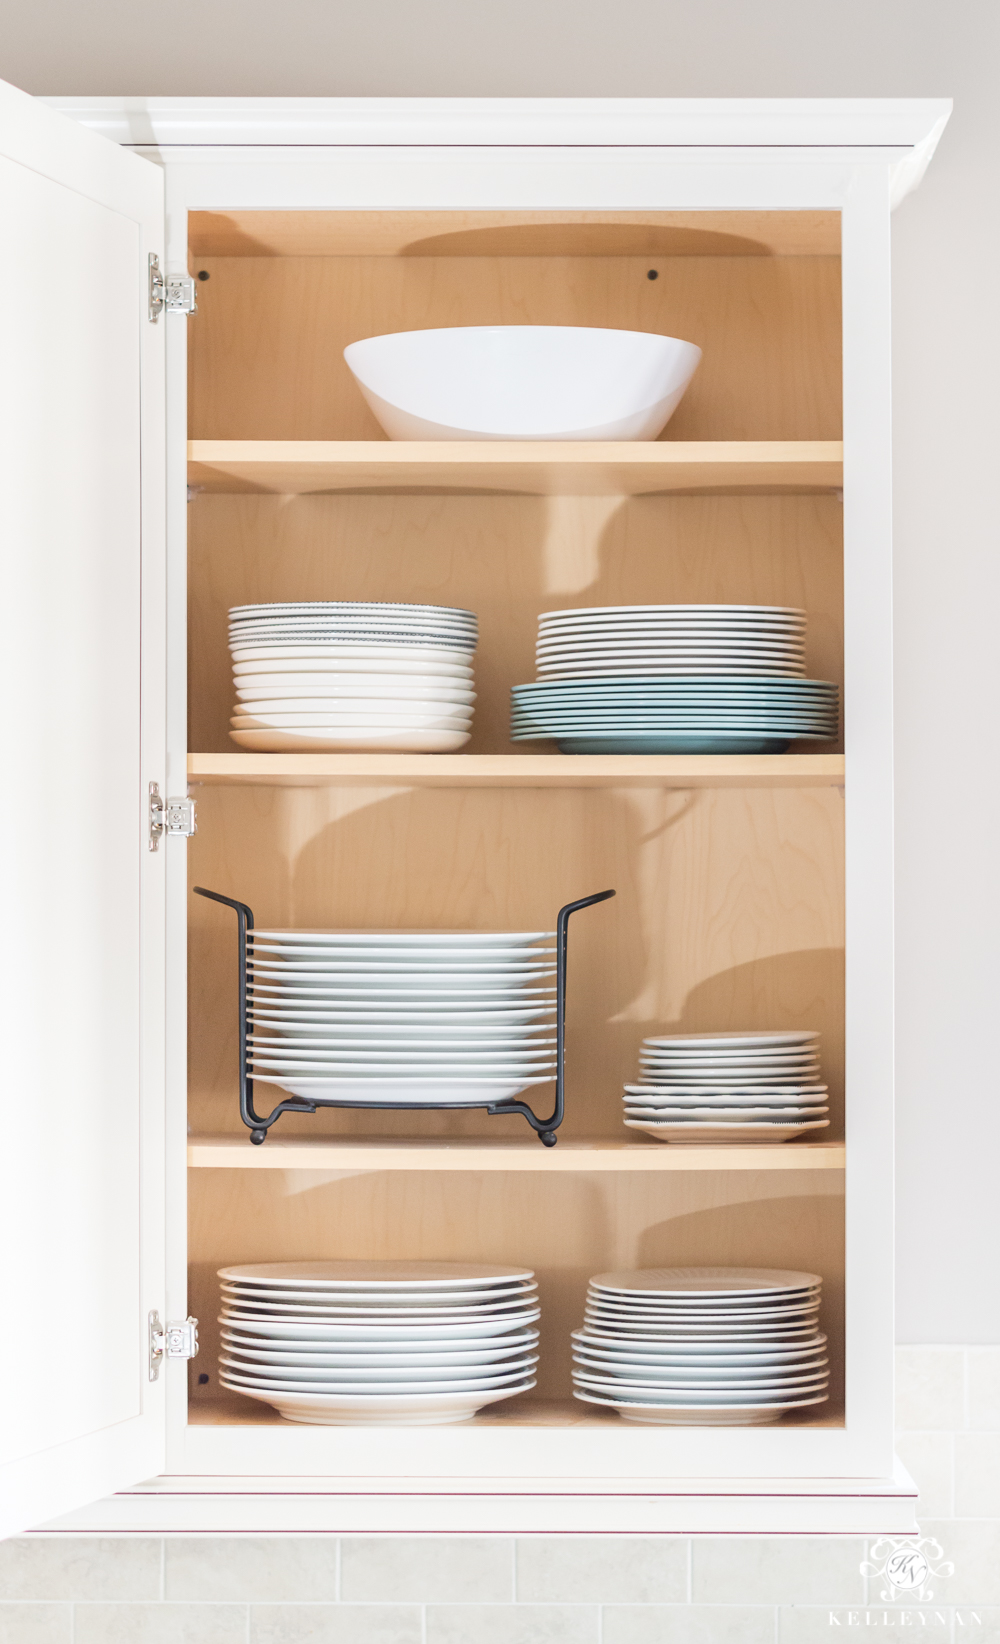 How To Organizing Dining Plates When You Have A Lot